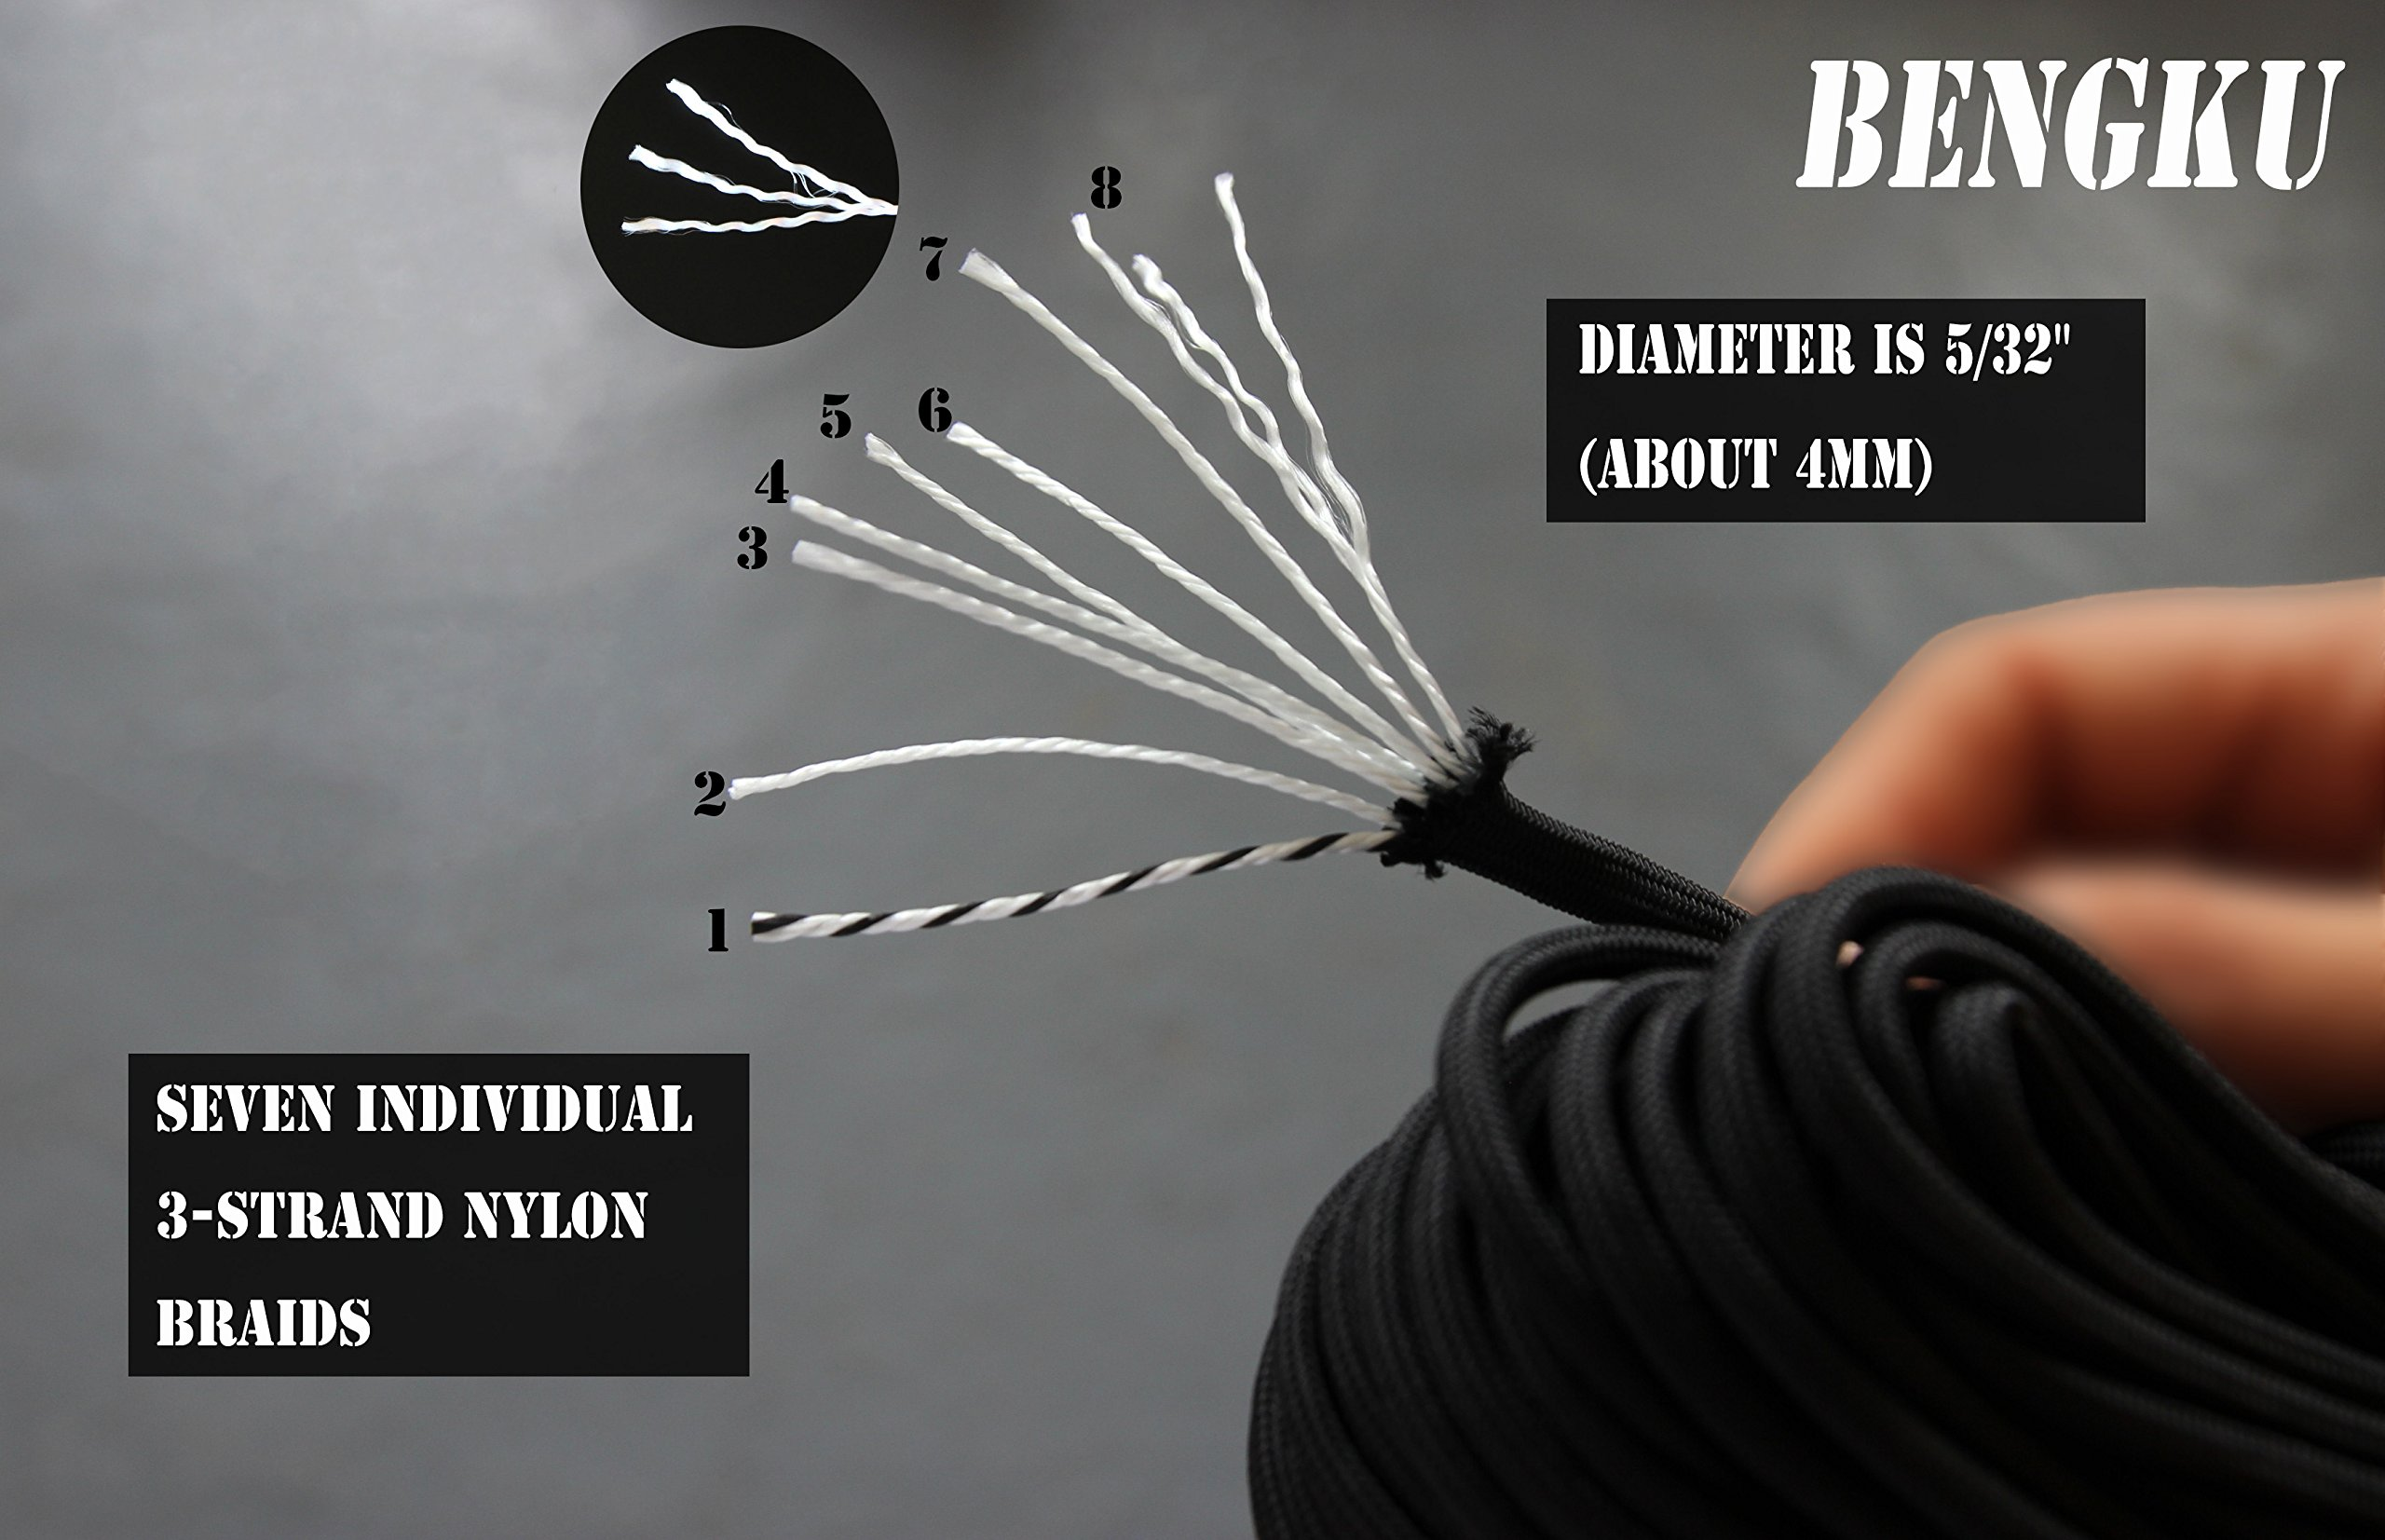 BENGKU Outdoor Survival Mil-SPEC 550lb Paracord/Parachute Cord(MIl-C-5040-H),50Feet,100% Nylon. (Black, 50) by BENGKU (Image #2)